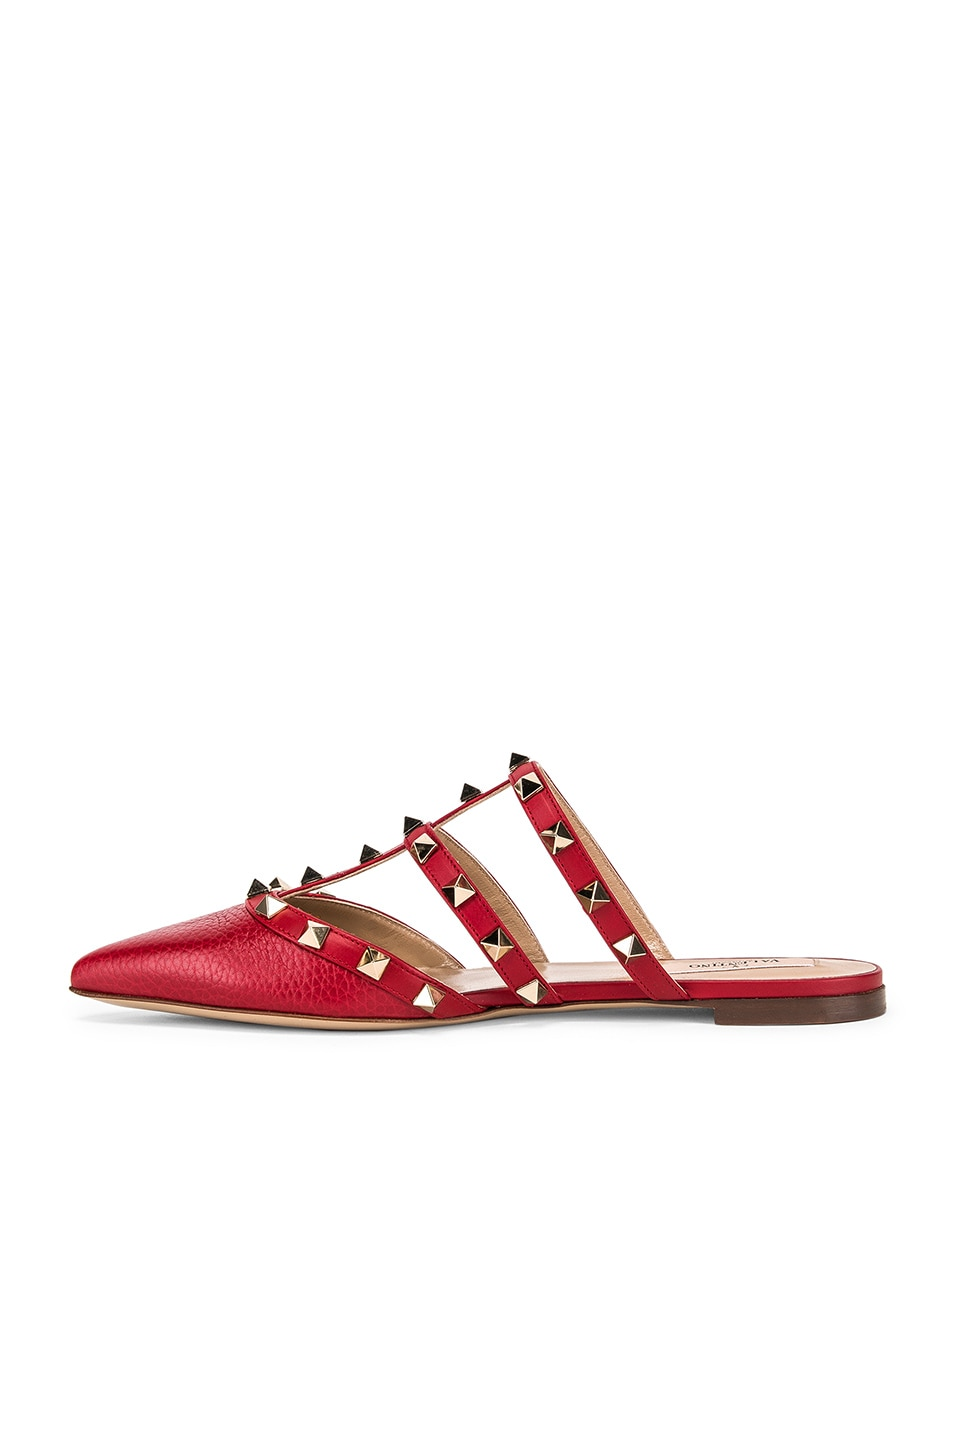 Image 5 of Valentino Rockstud Mules in Red